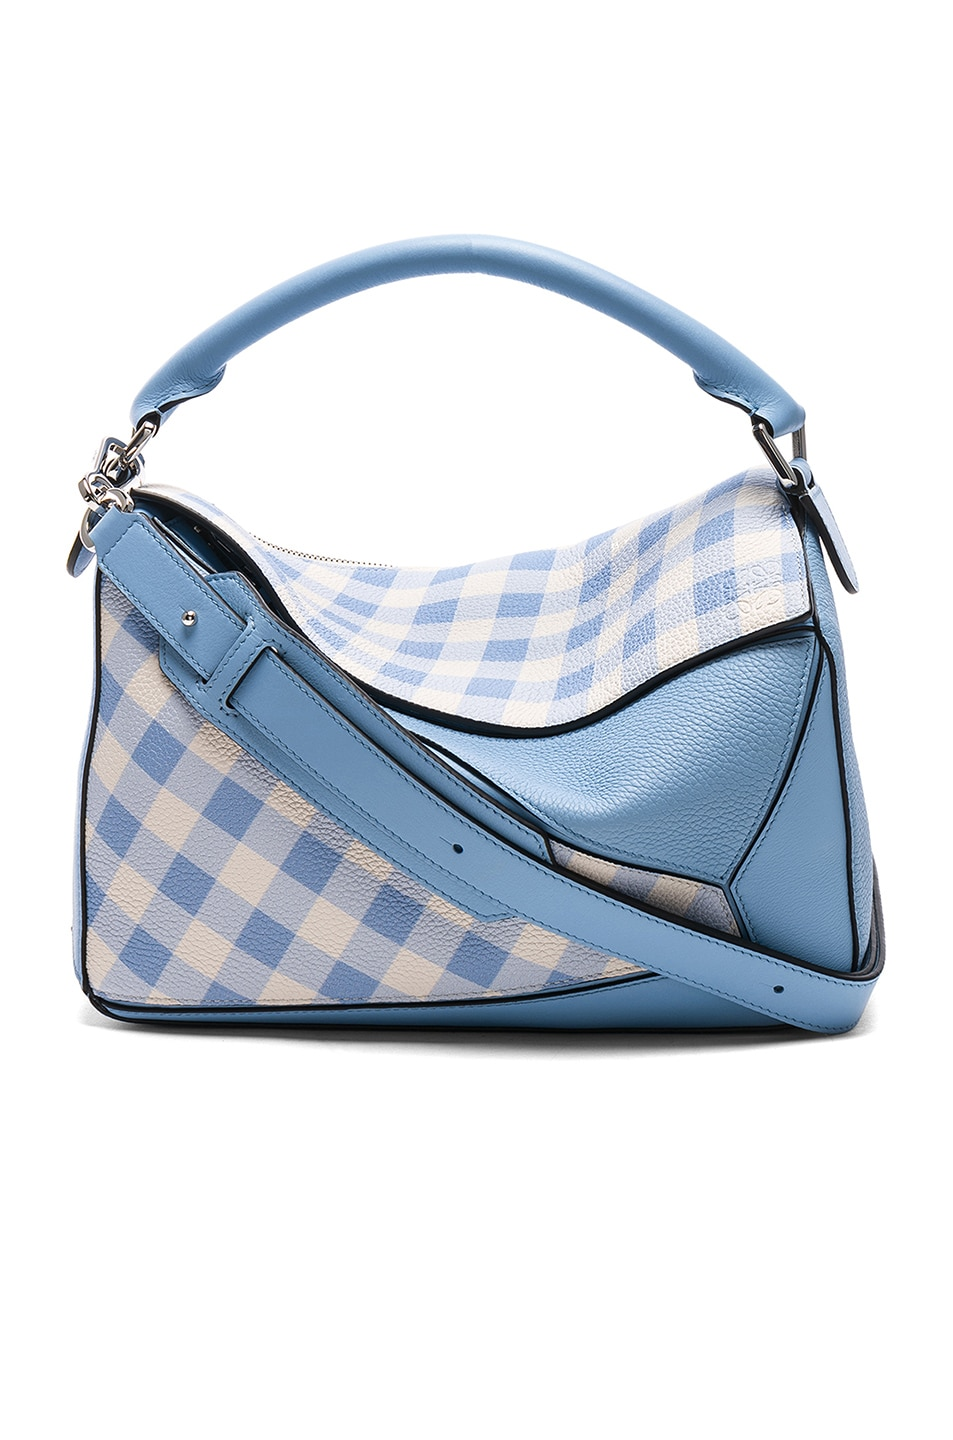 Blue Gingham Puzzle Bag Loewe Buy Cheap Visit New xeC9Xh